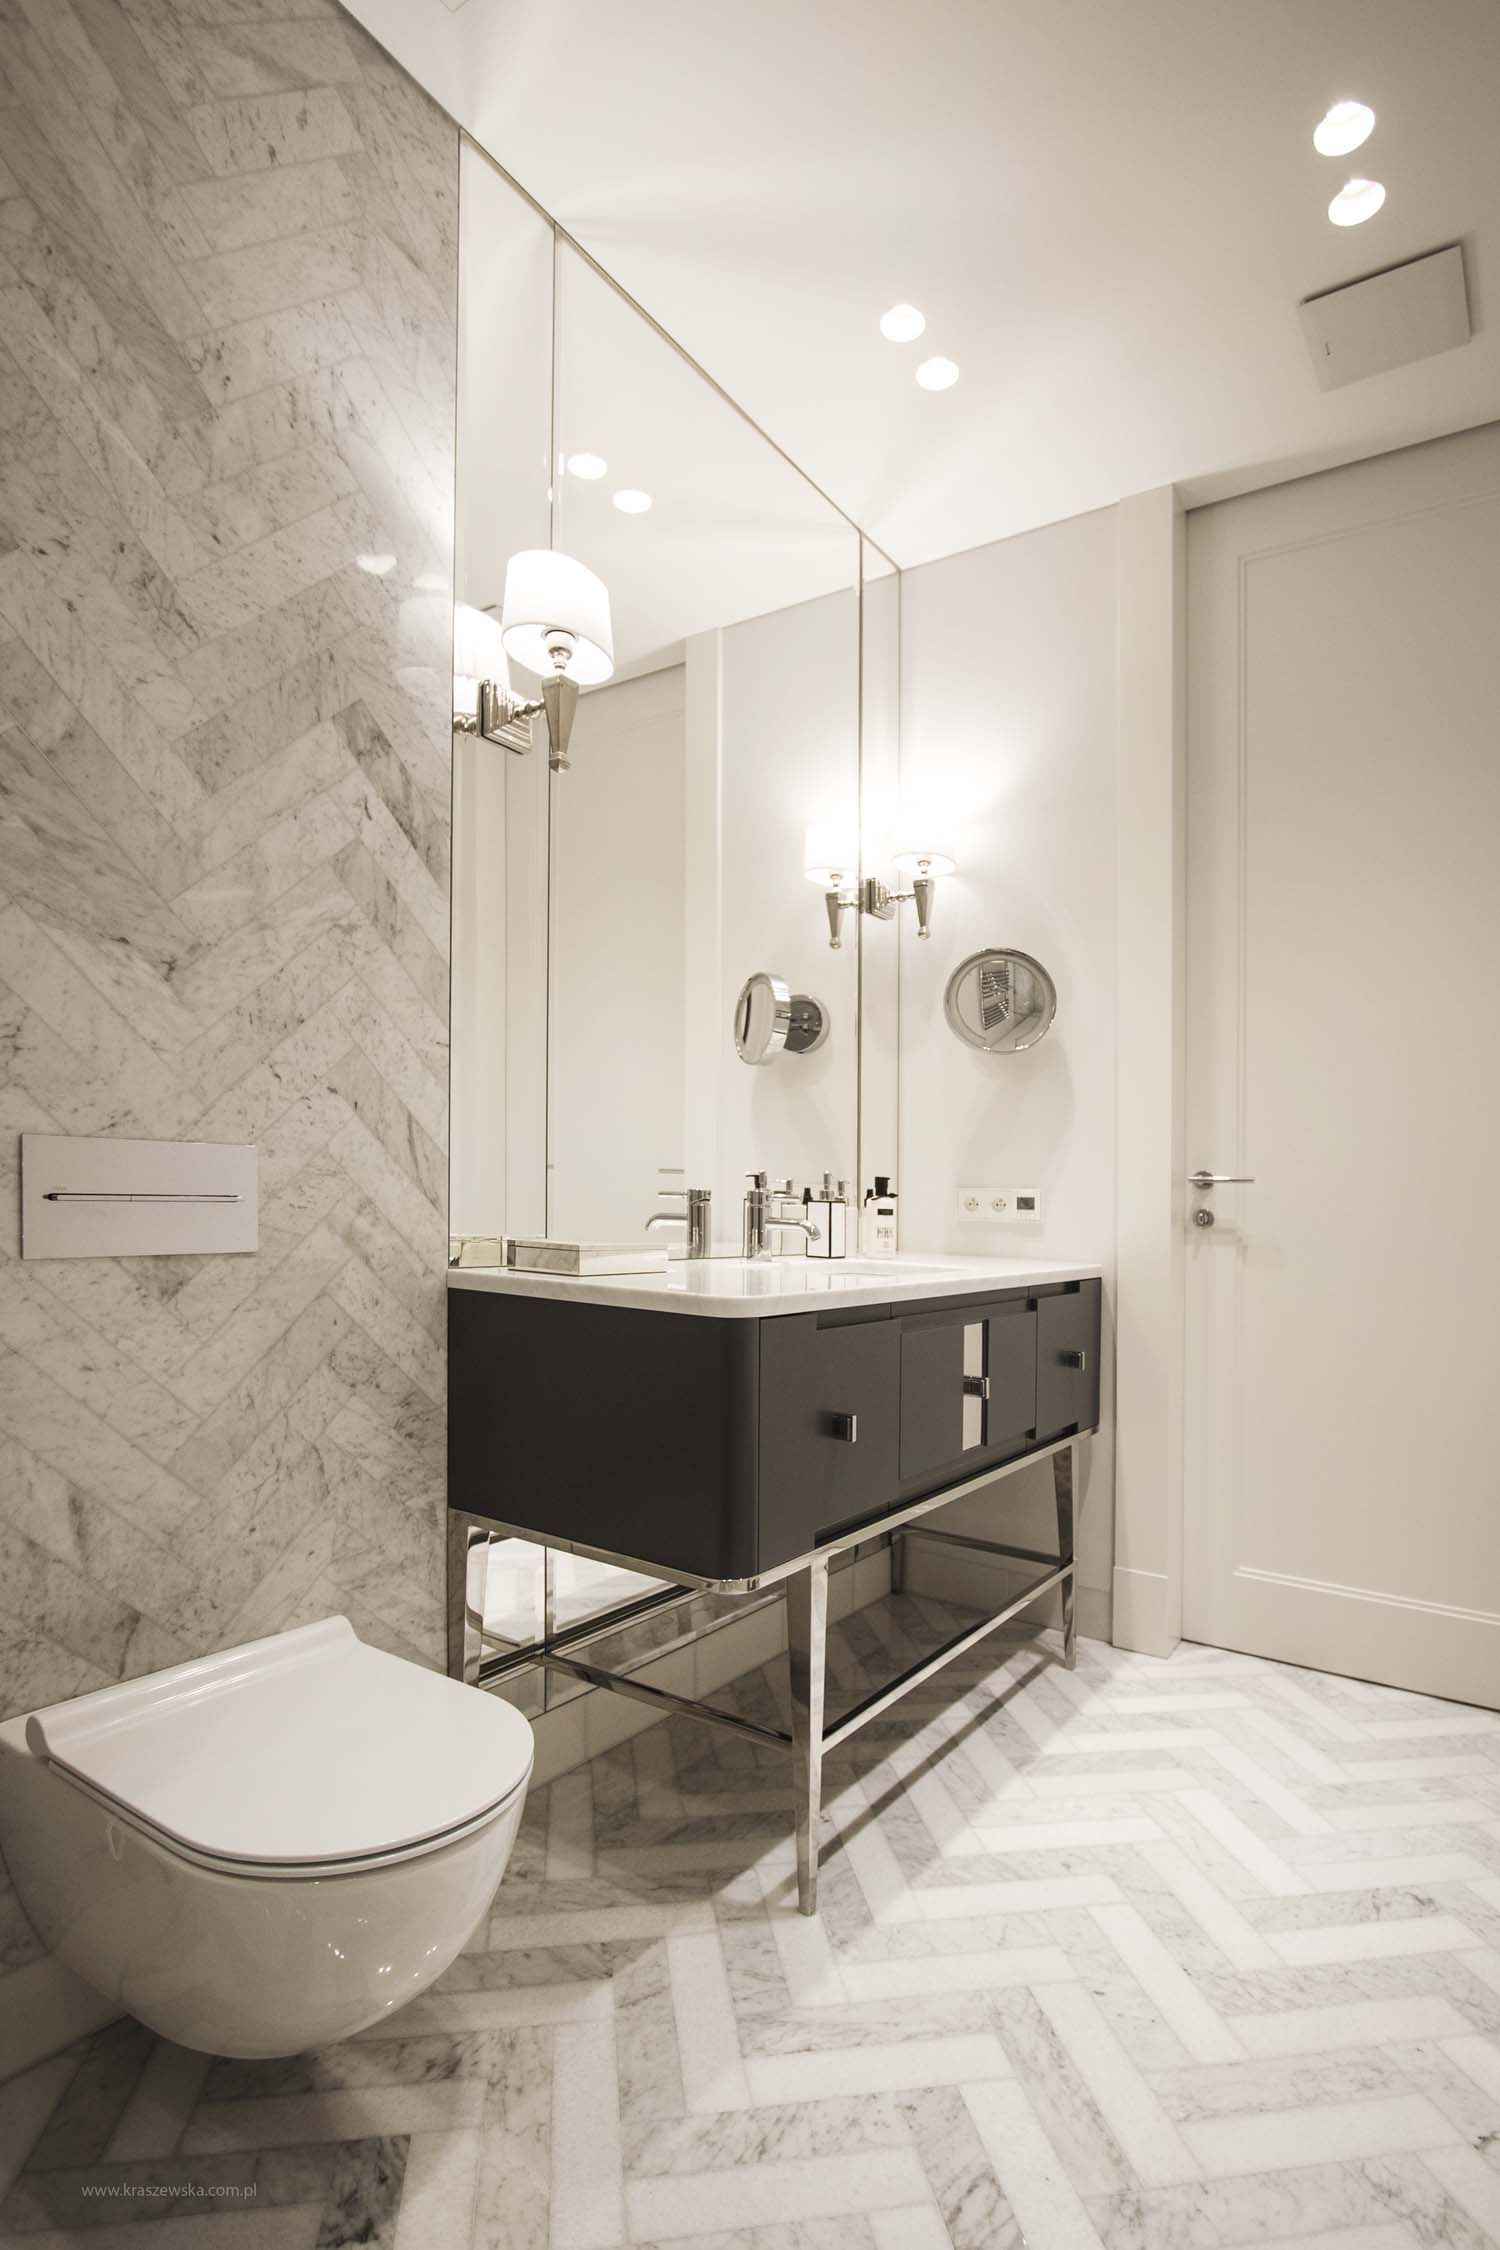 Round recessed led downlights aplis in line 80 integrated in the ceiling are illuminating this tasteful bathroom with marble finishing